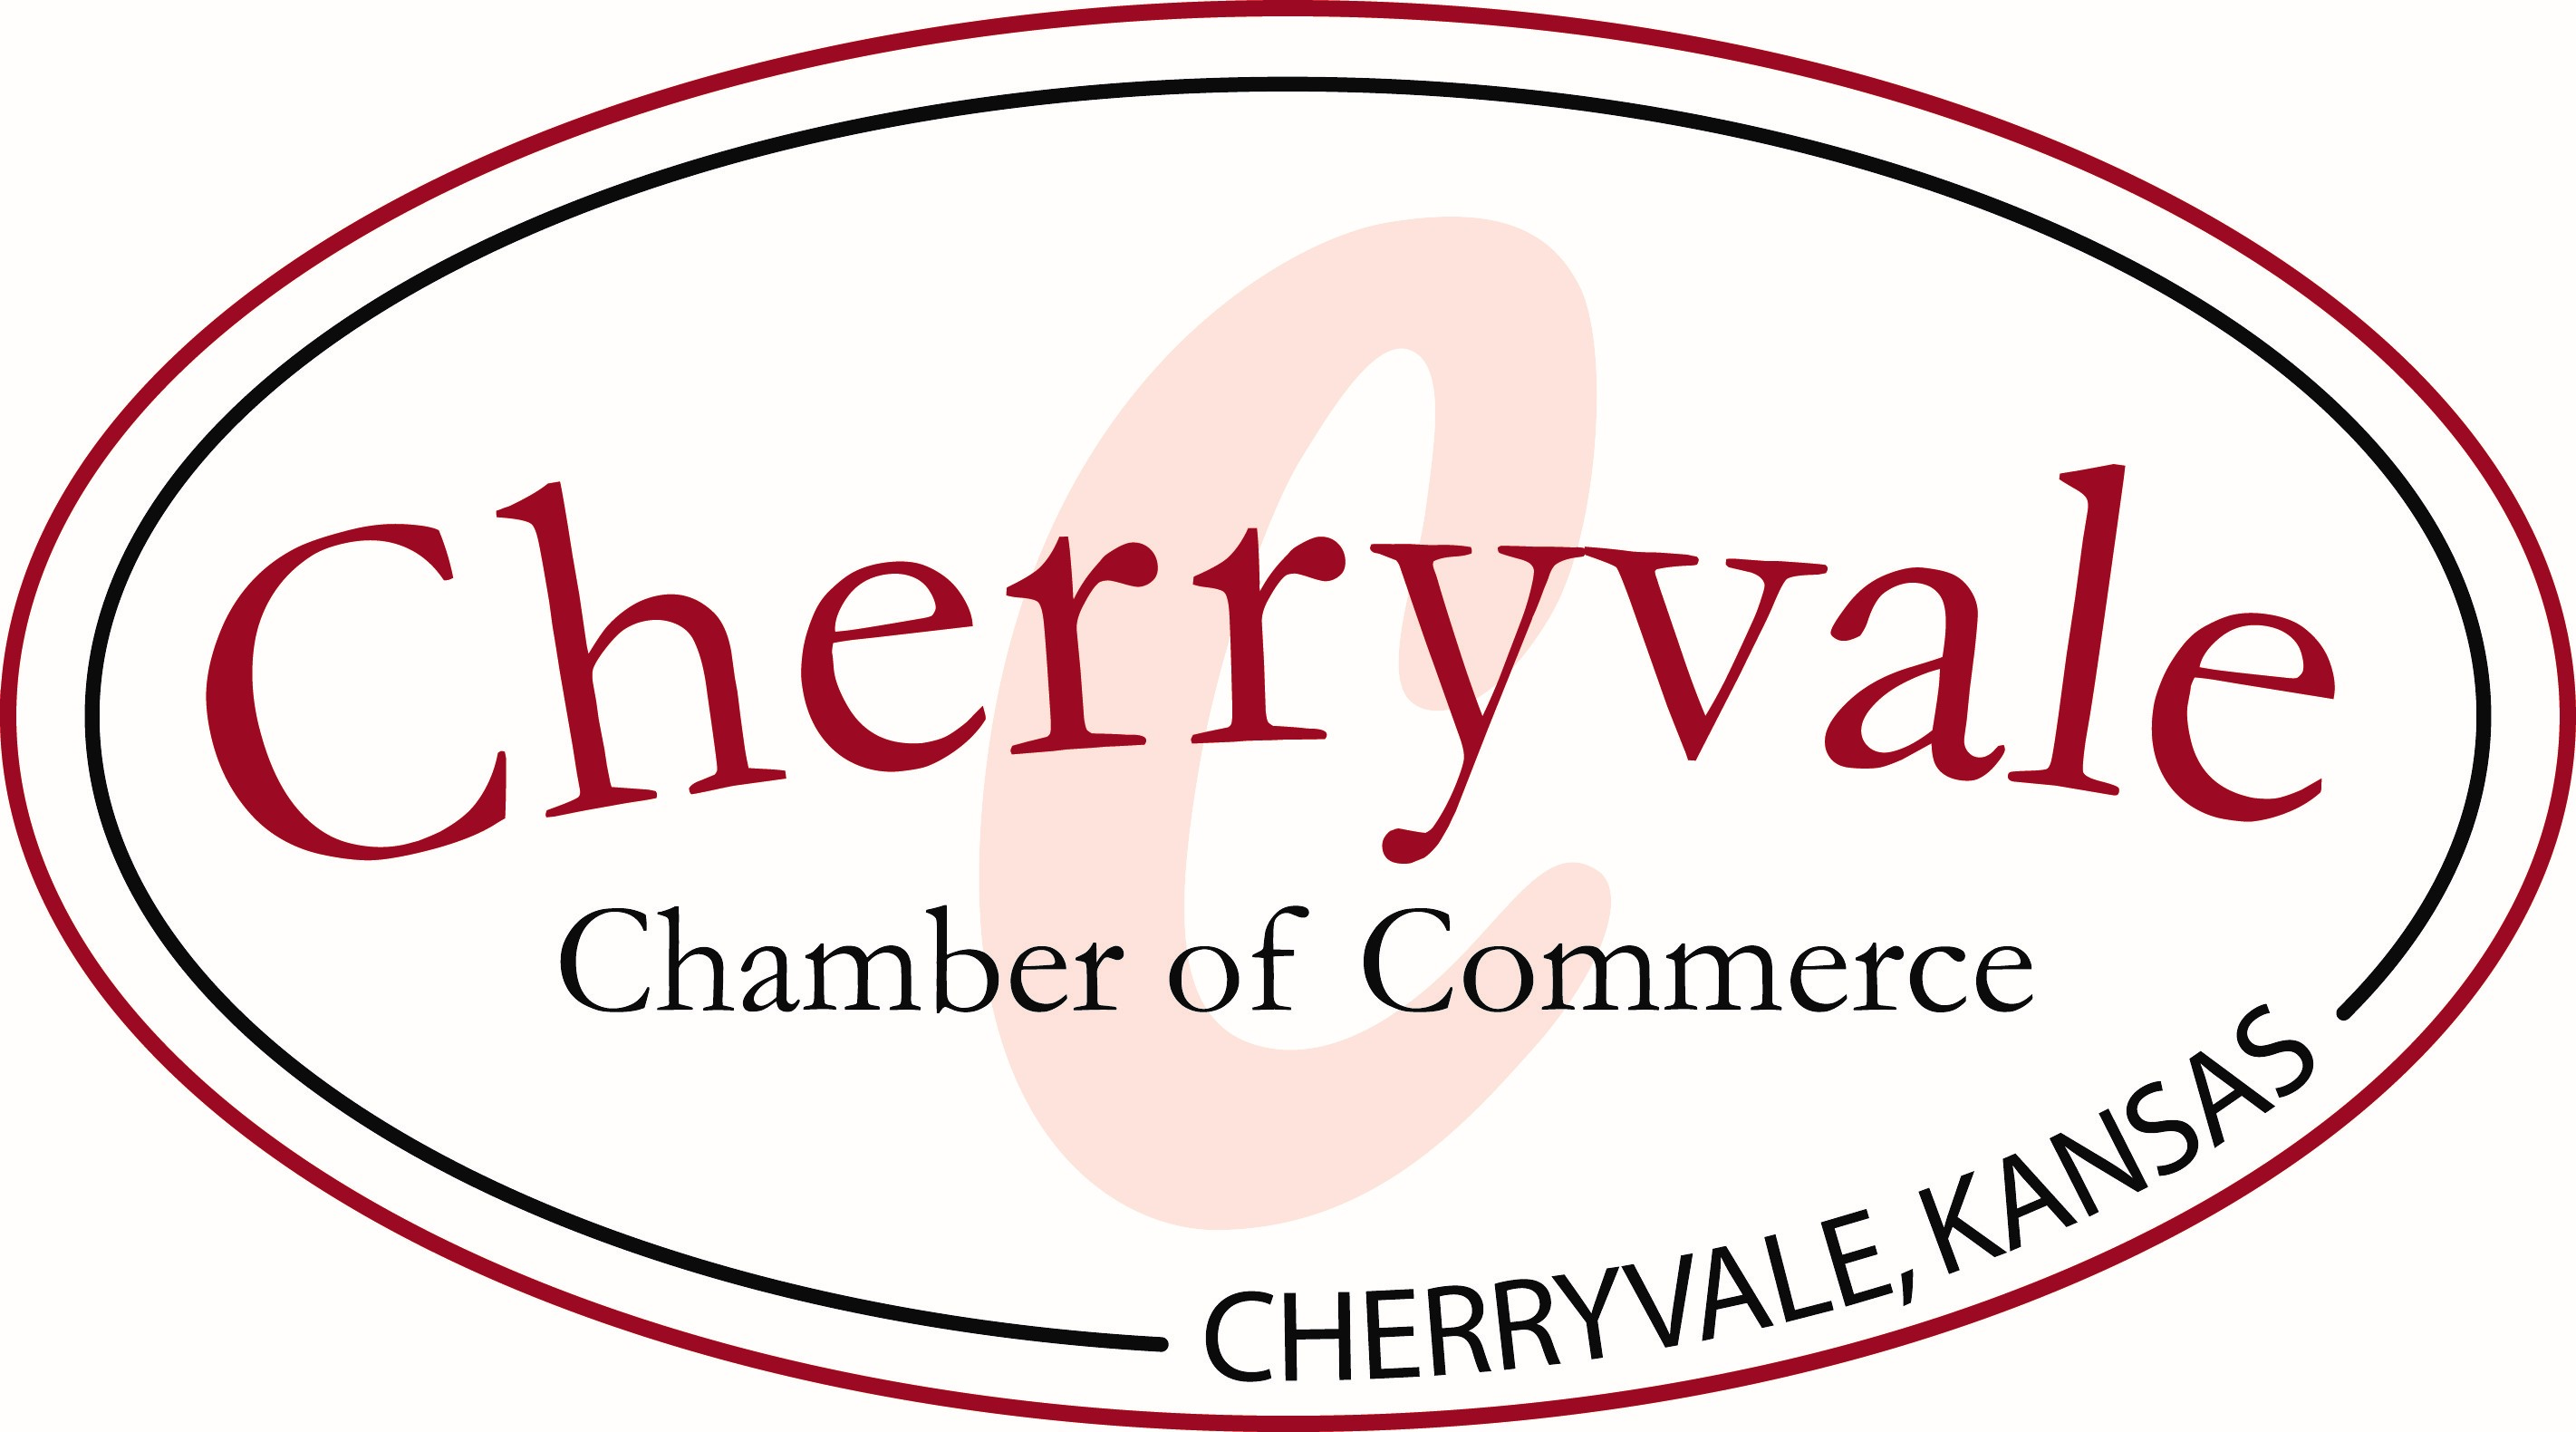 Cherryvale Chamber of Commerce